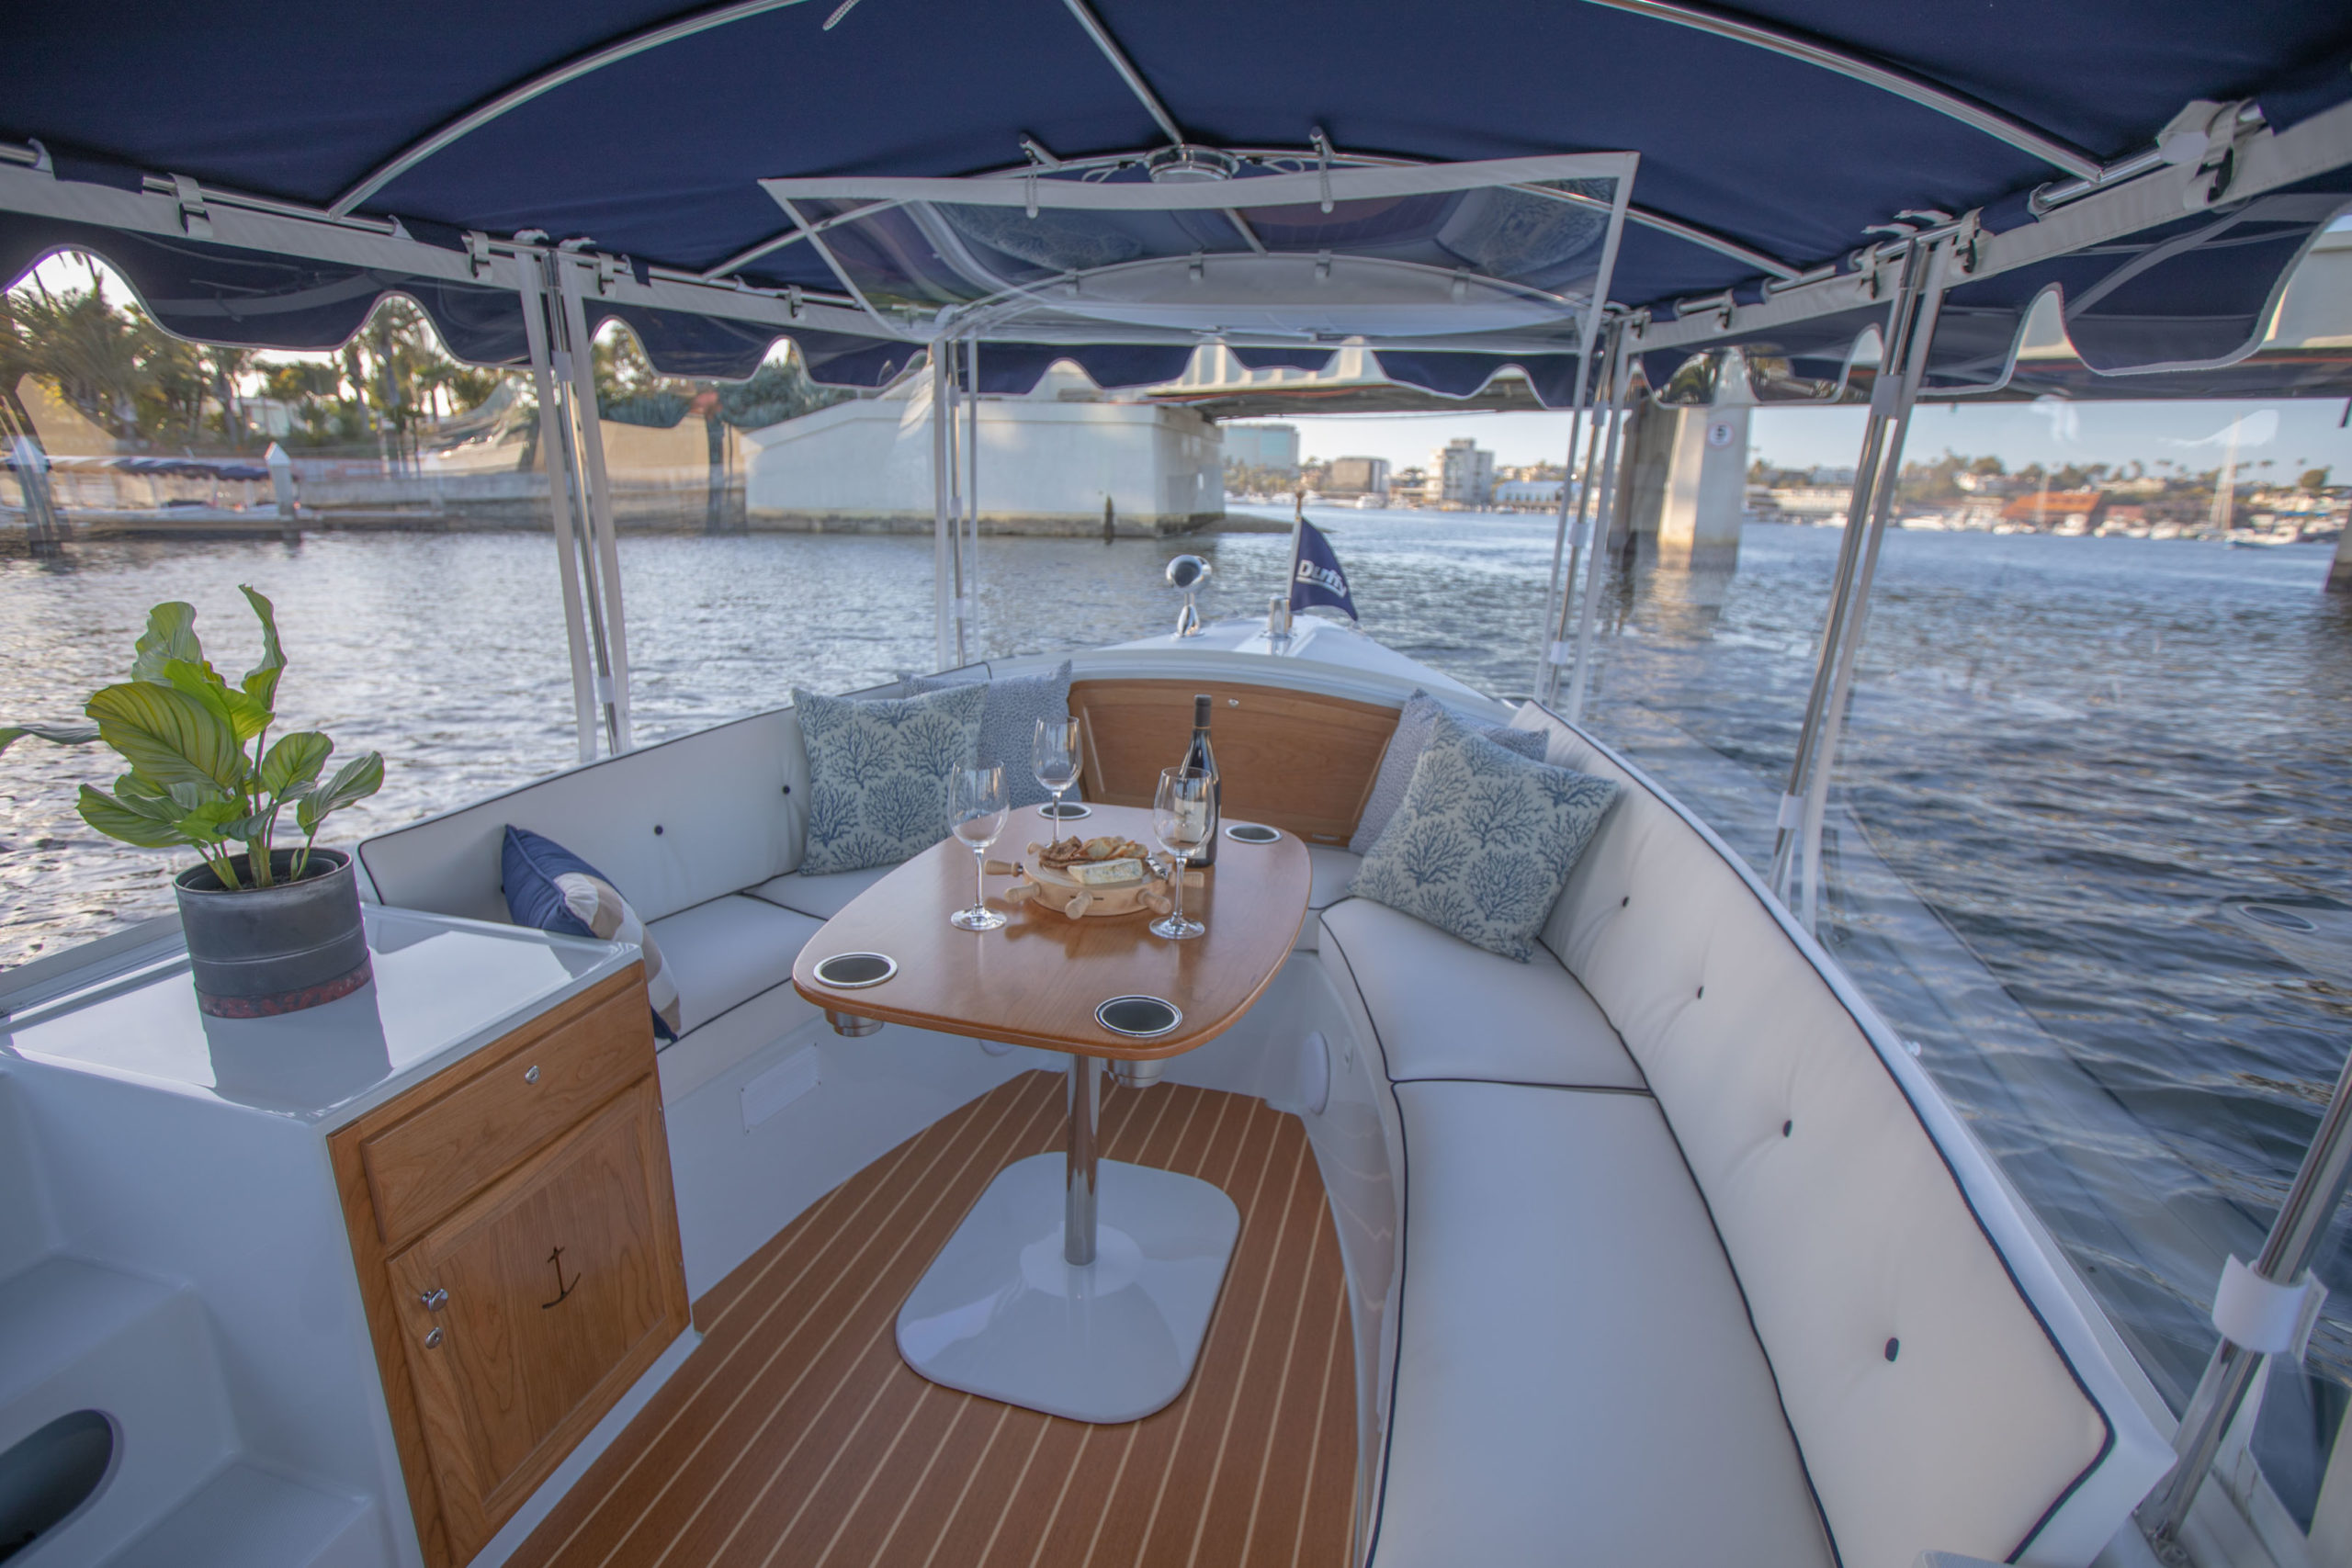 Duffy-Electric-Boats-18-Snug-Harbor-Interior-2020-18